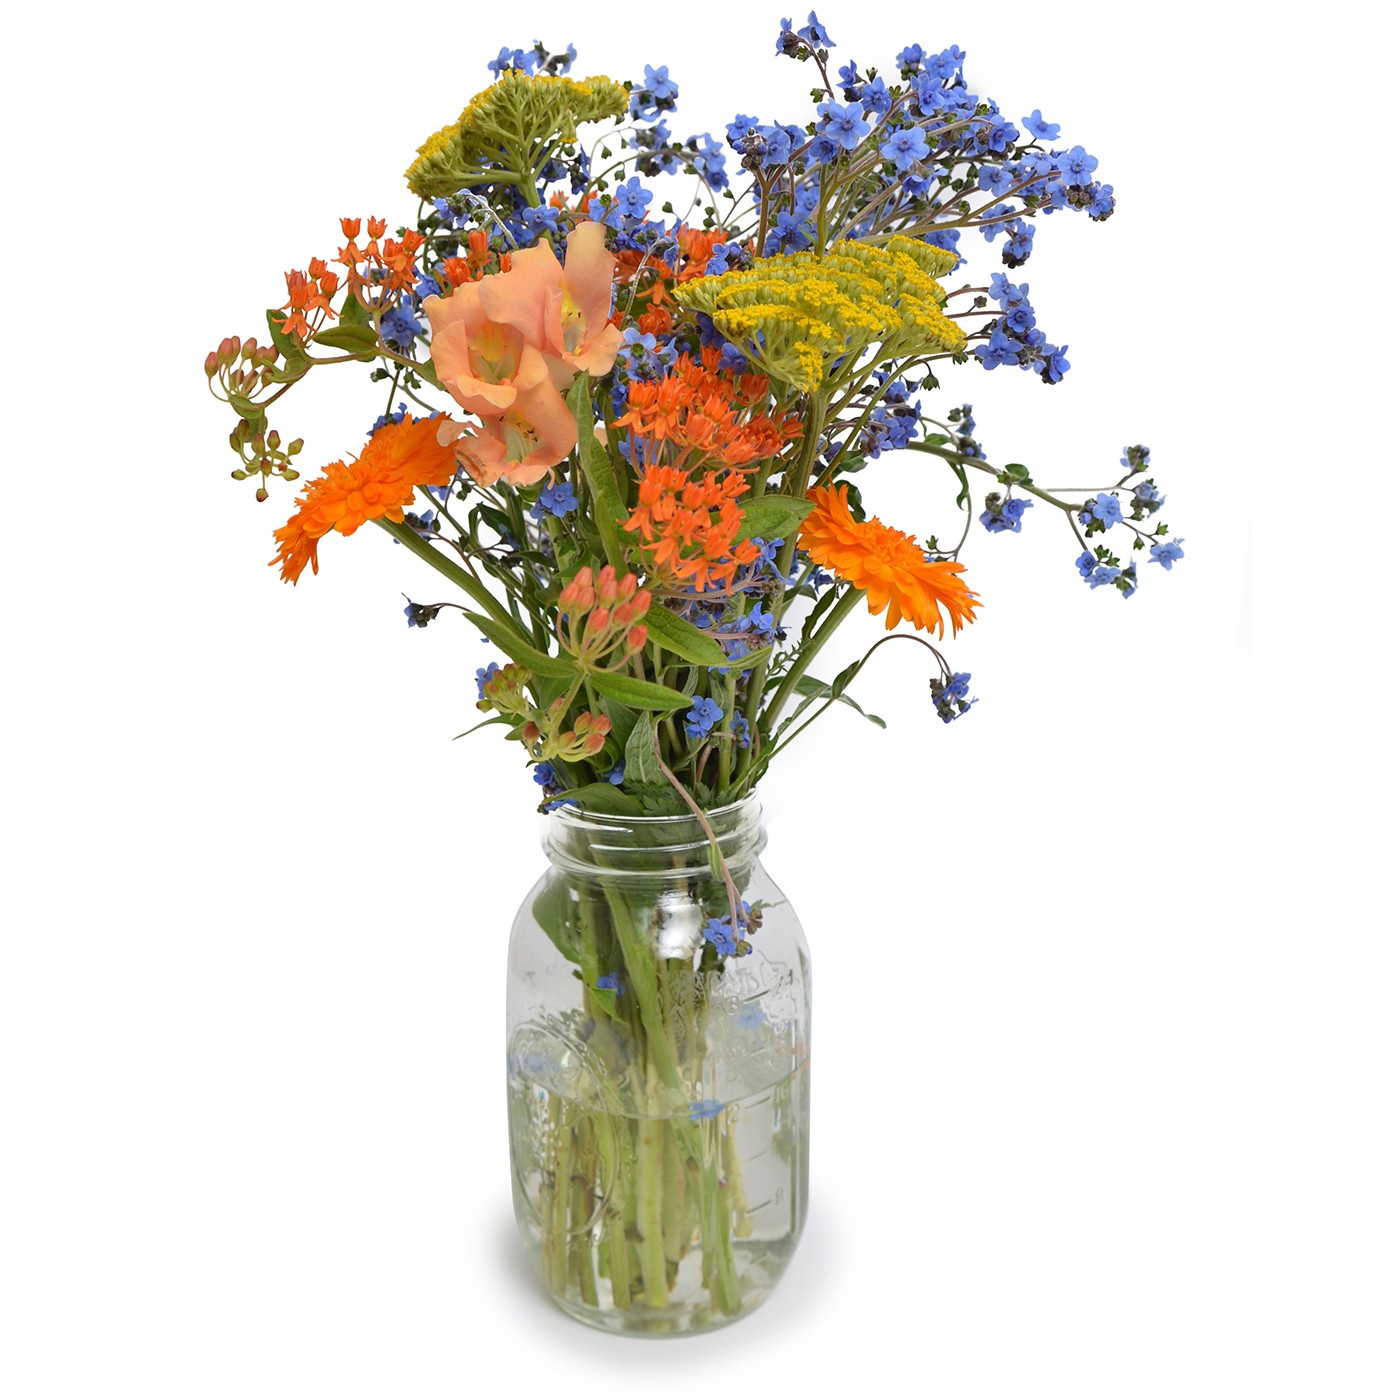 Michigan wild flower bouquets pick up flower catalog michigan wild flower bouquets izmirmasajfo